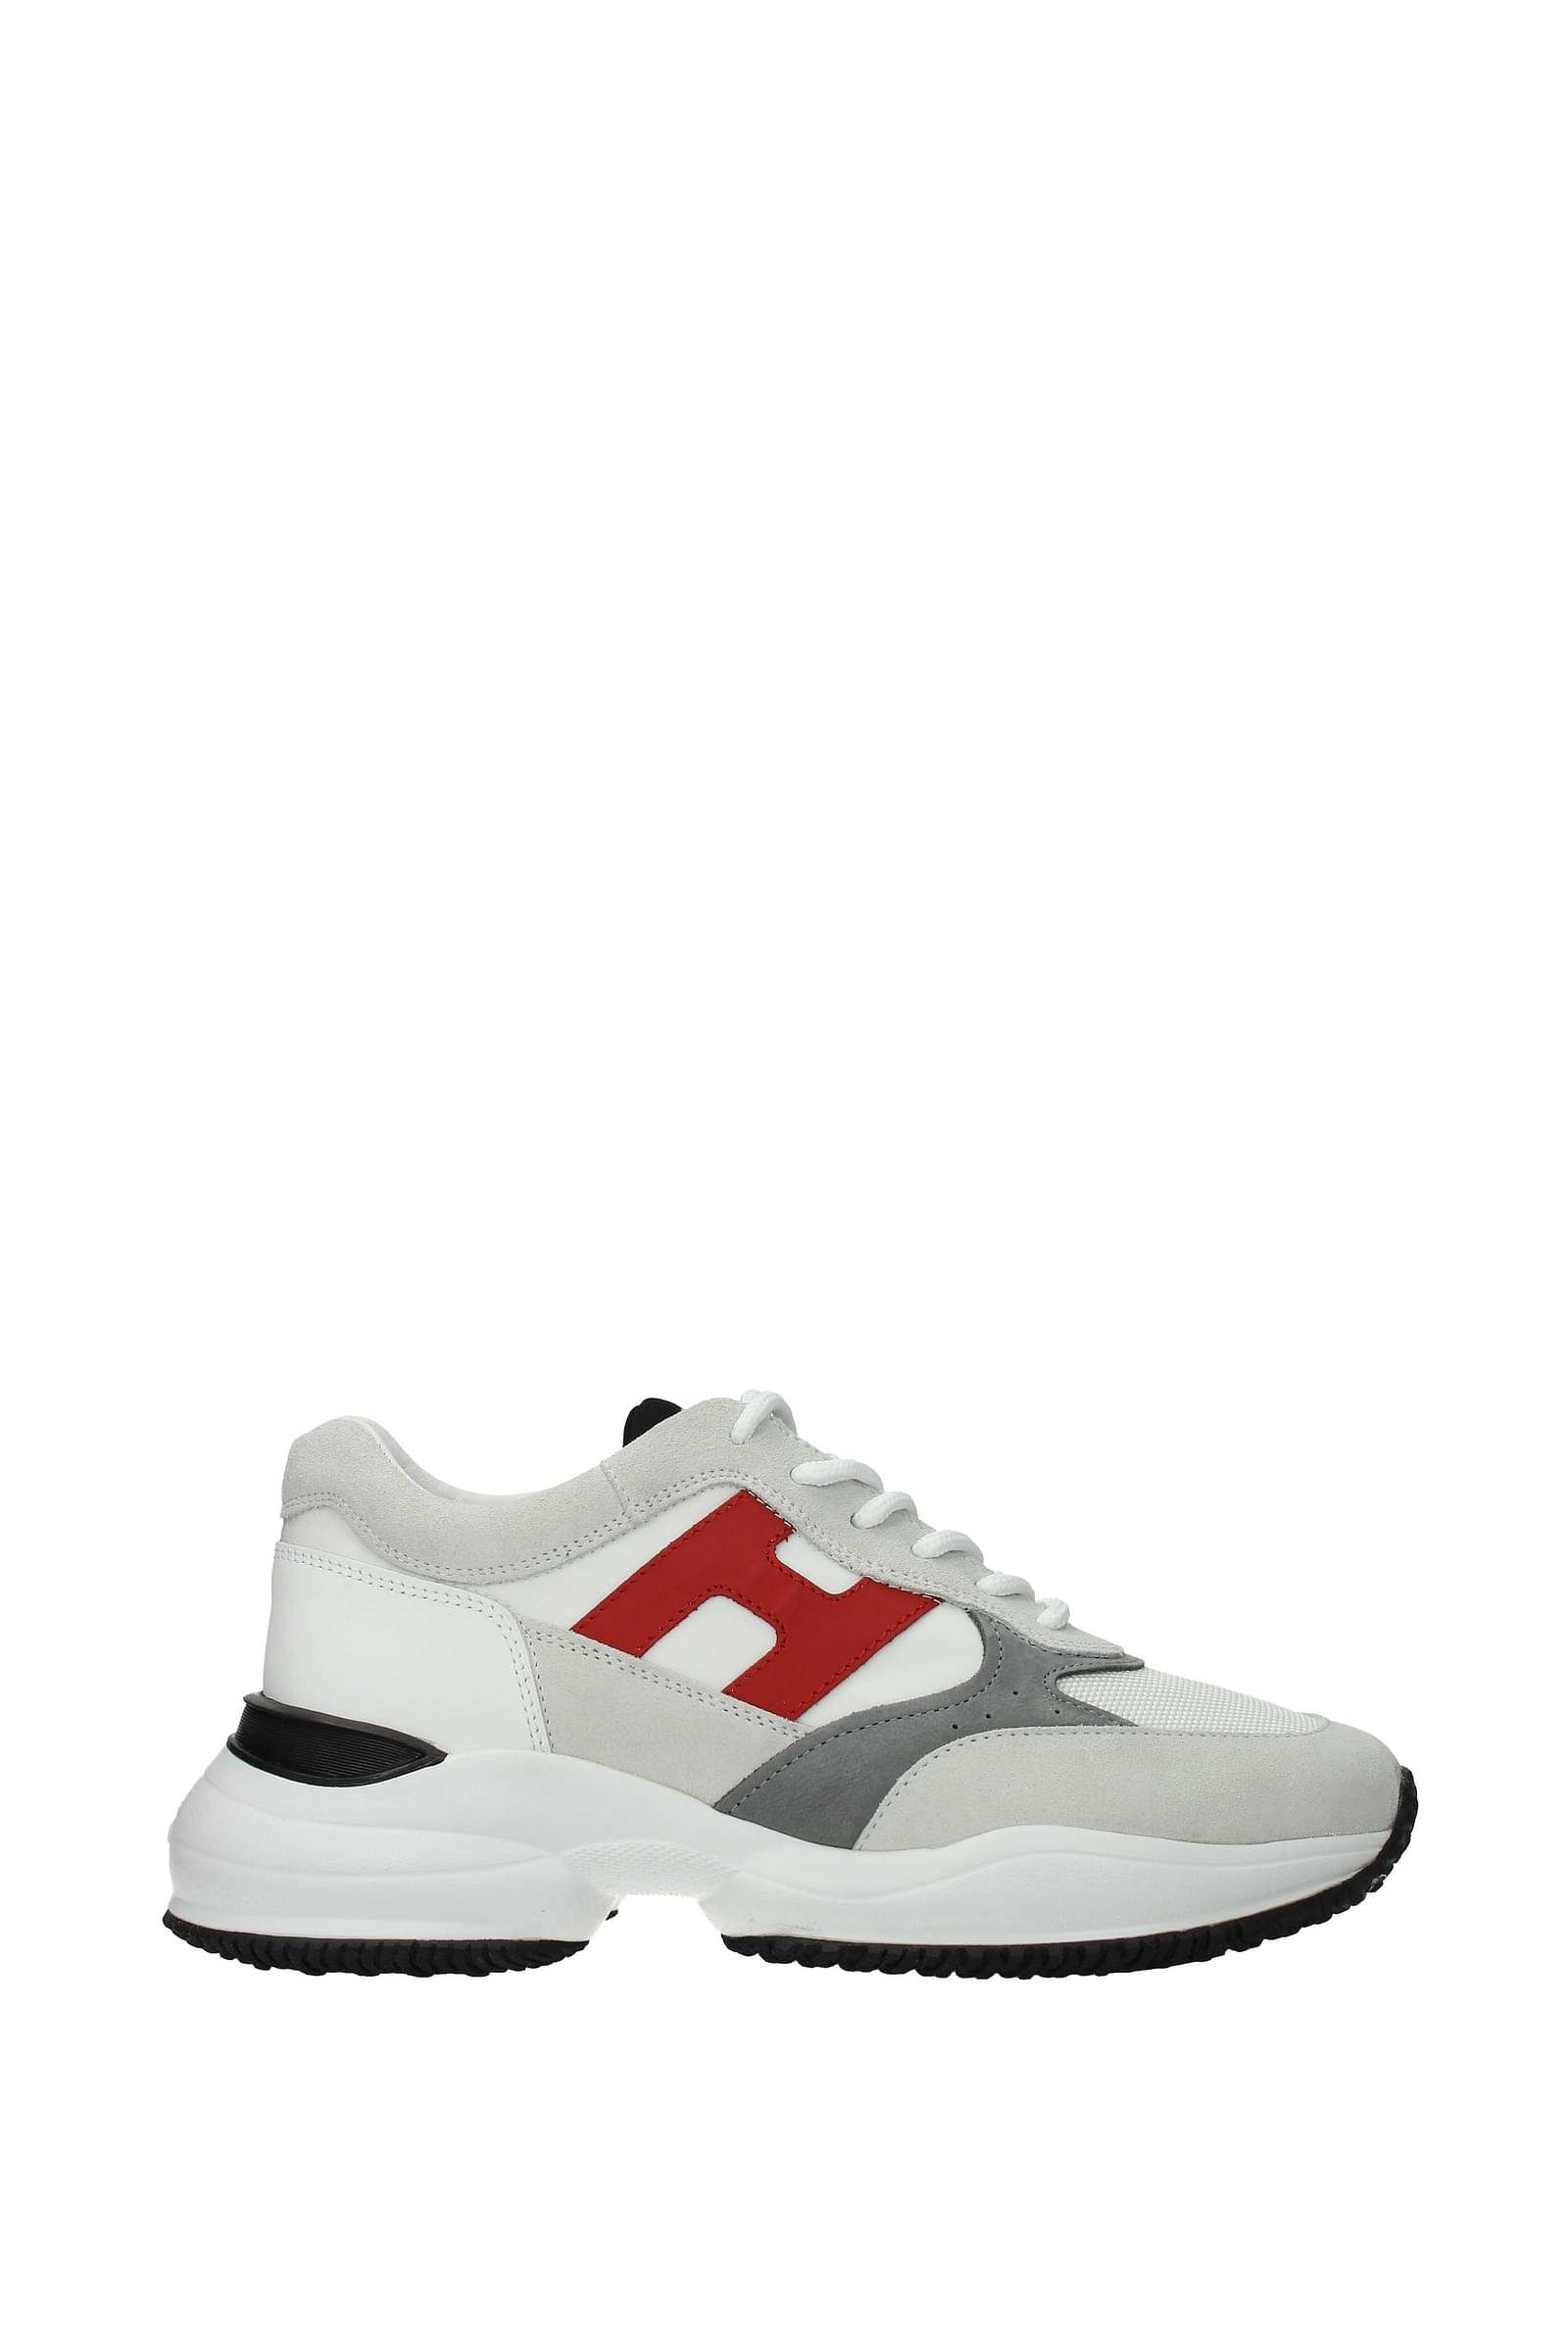 Hogan Sneakers interaction Men Fabric White Red